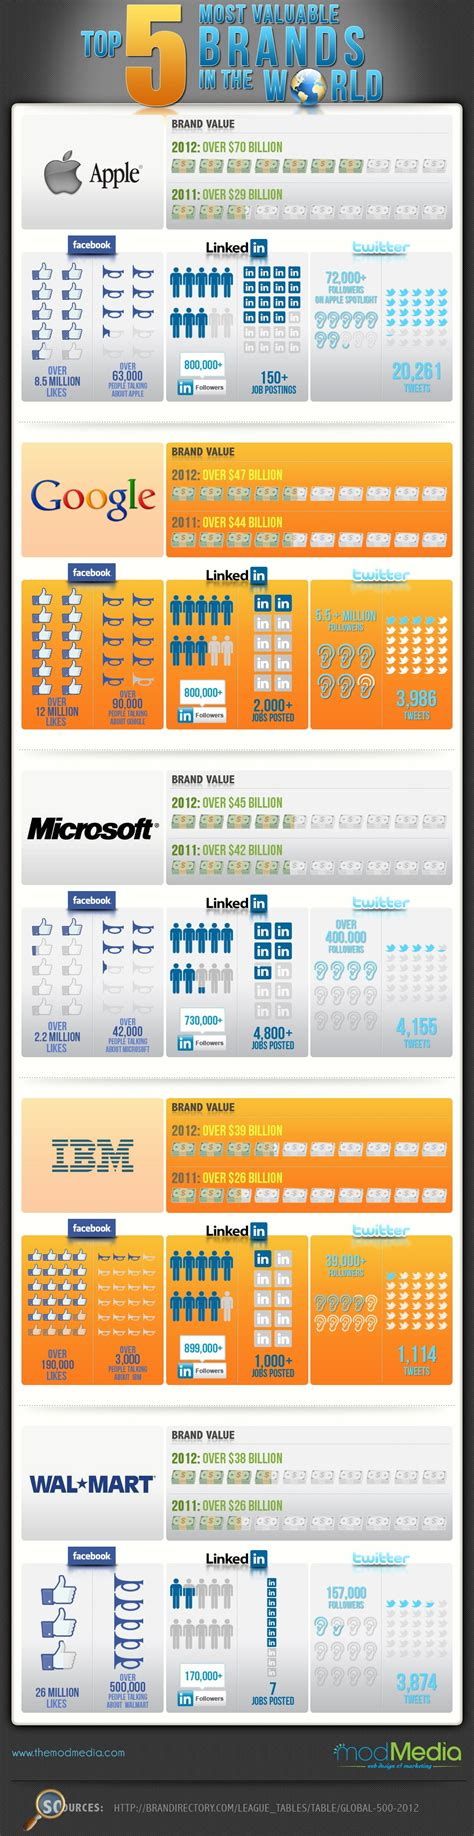 infographic the world s 100 most valuable brands in 2018 top 5 most valuable brands in the world of technology an infographic